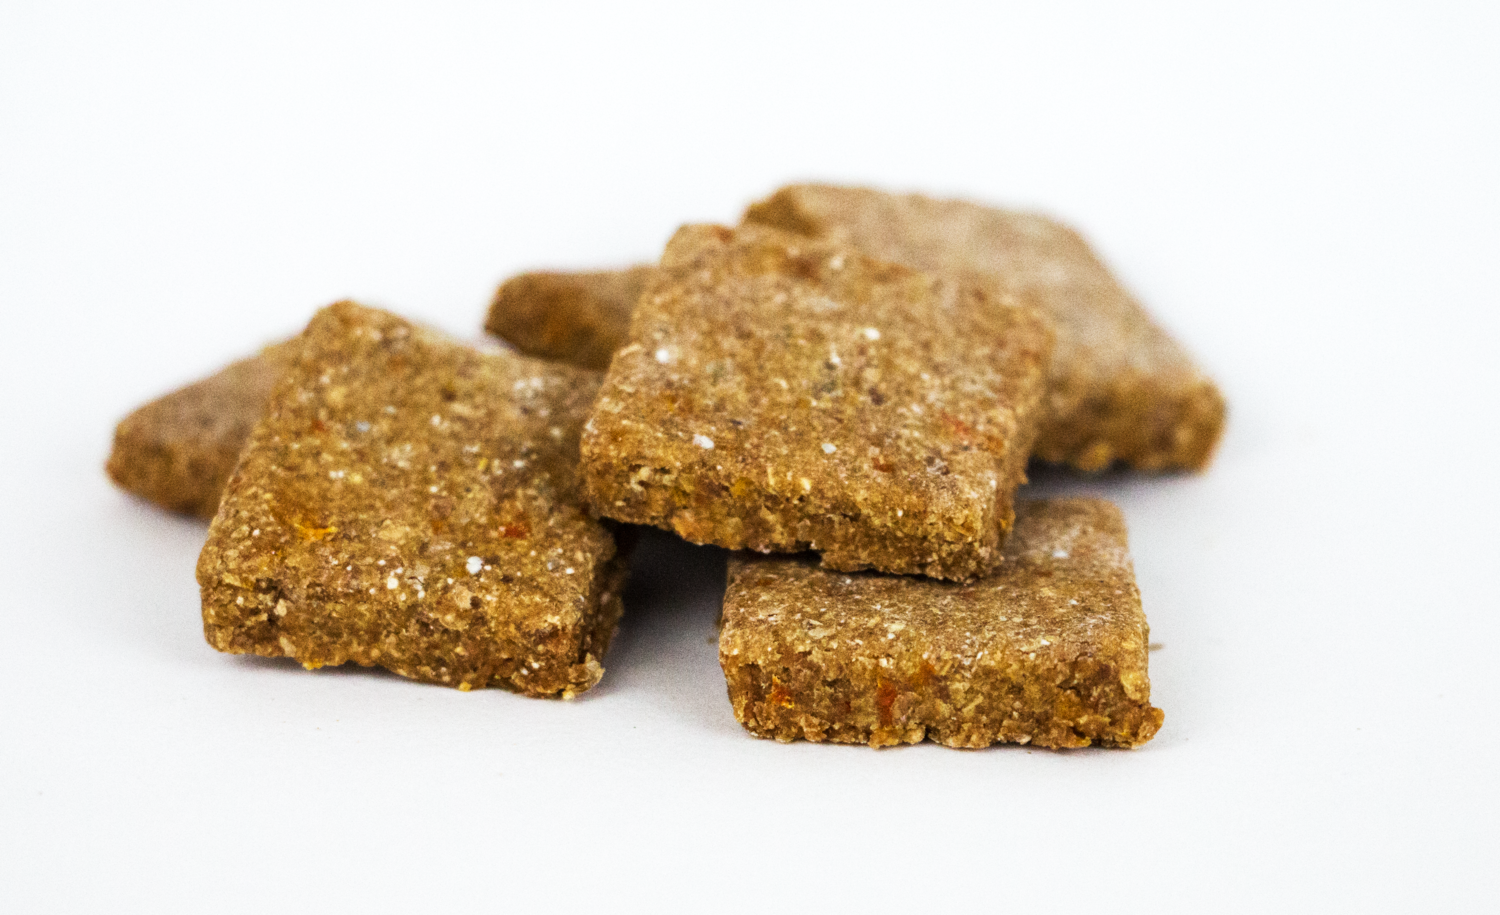 600mg CBD-Rich Dog Treats